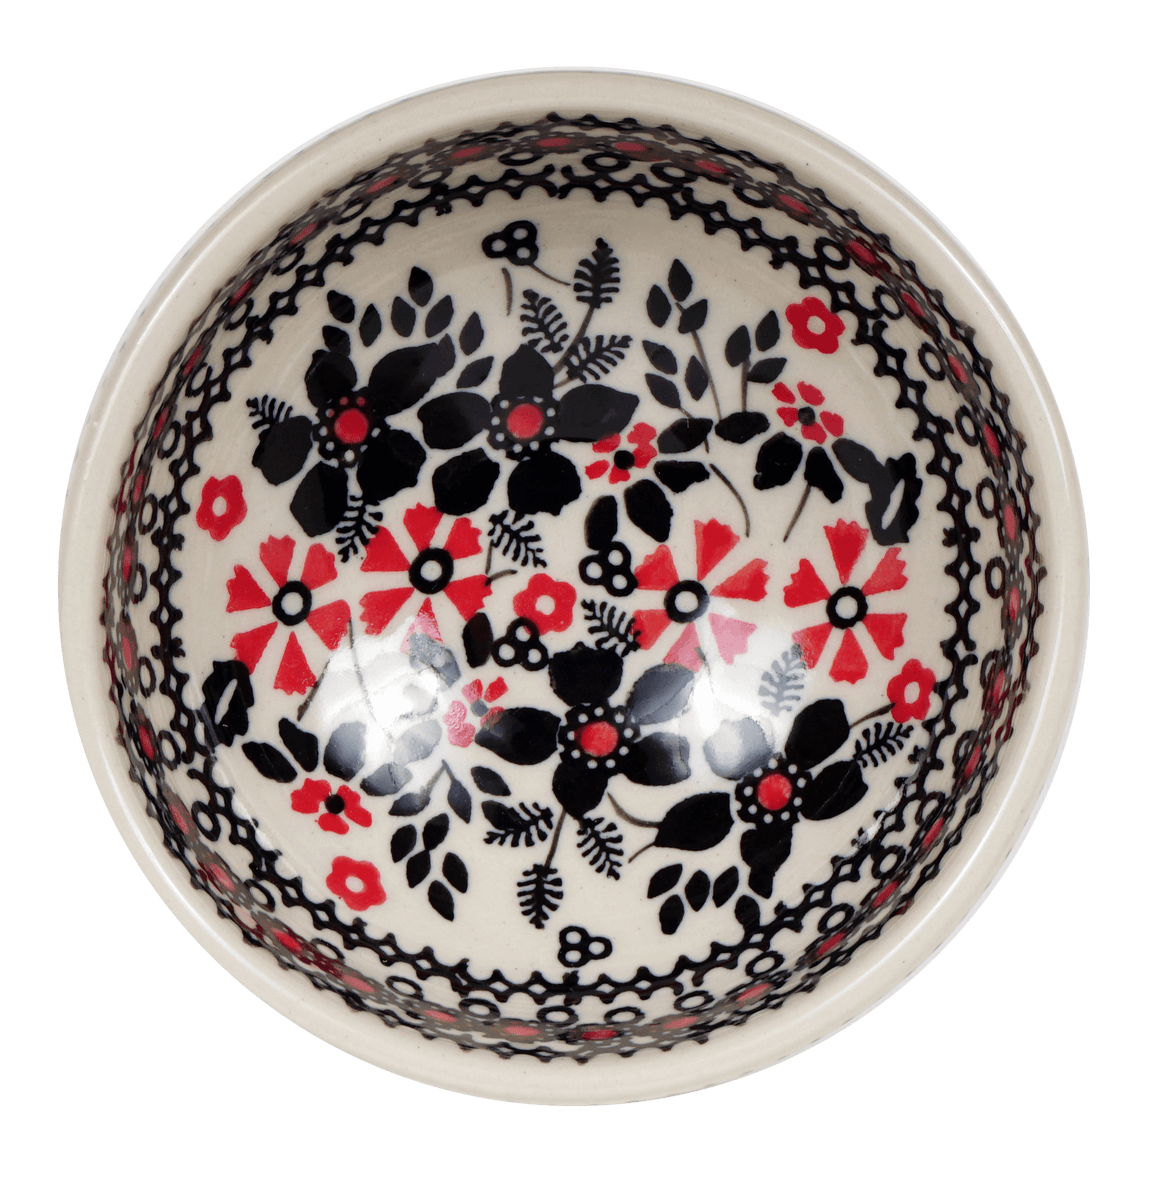 Dipping Bowl (Duet in Black & Red)